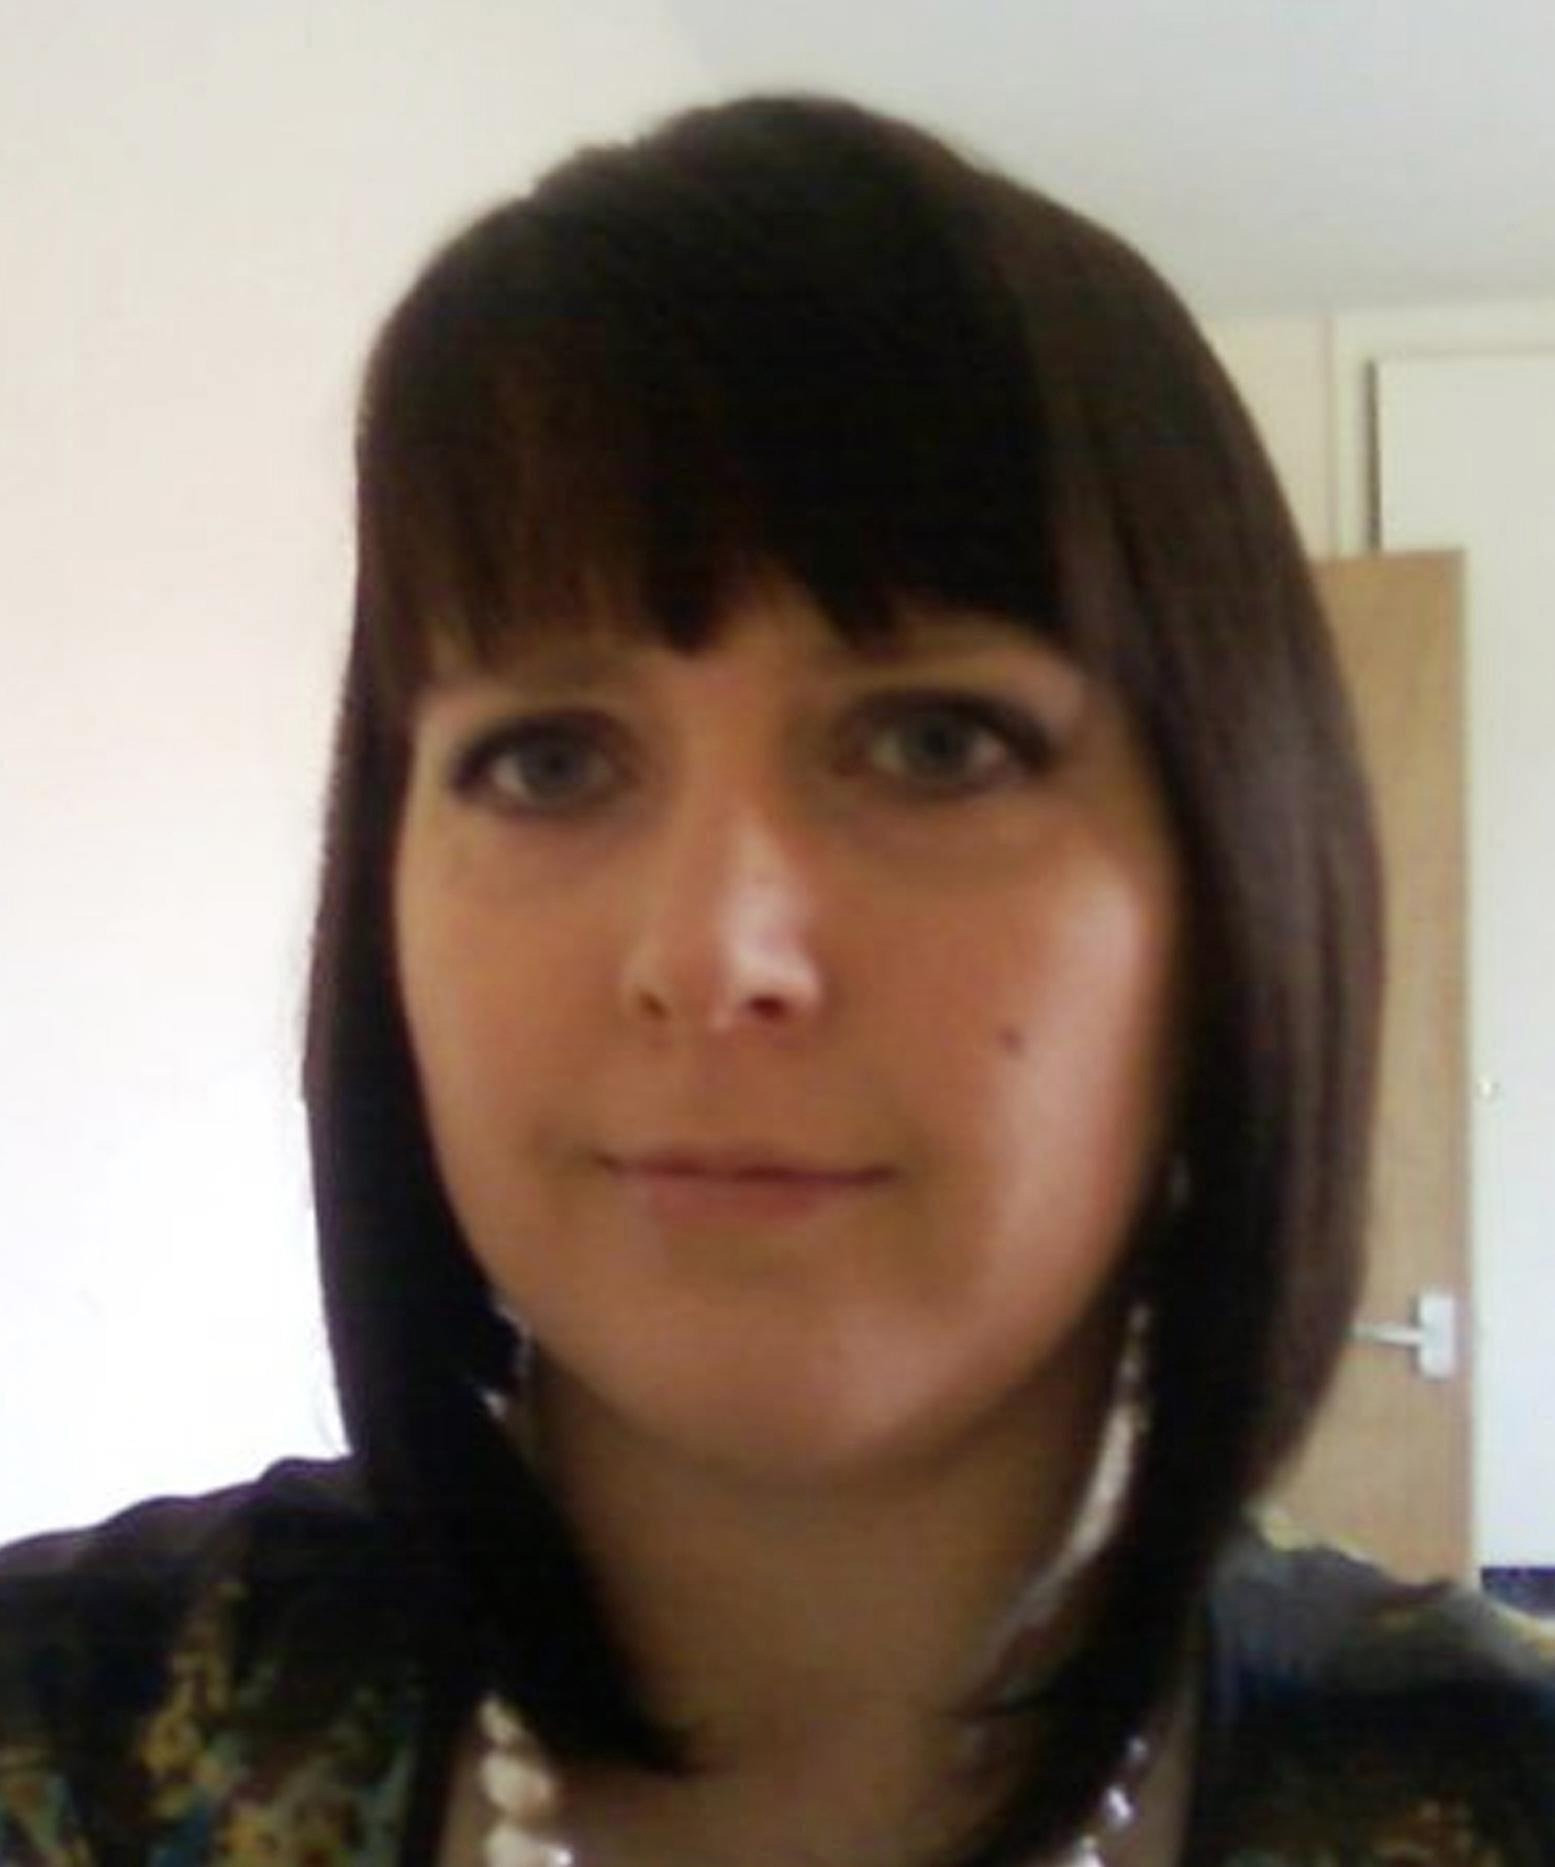 Clare Wood was 36-years-old when she was murdered by her partner, in 2009. Credit: PA